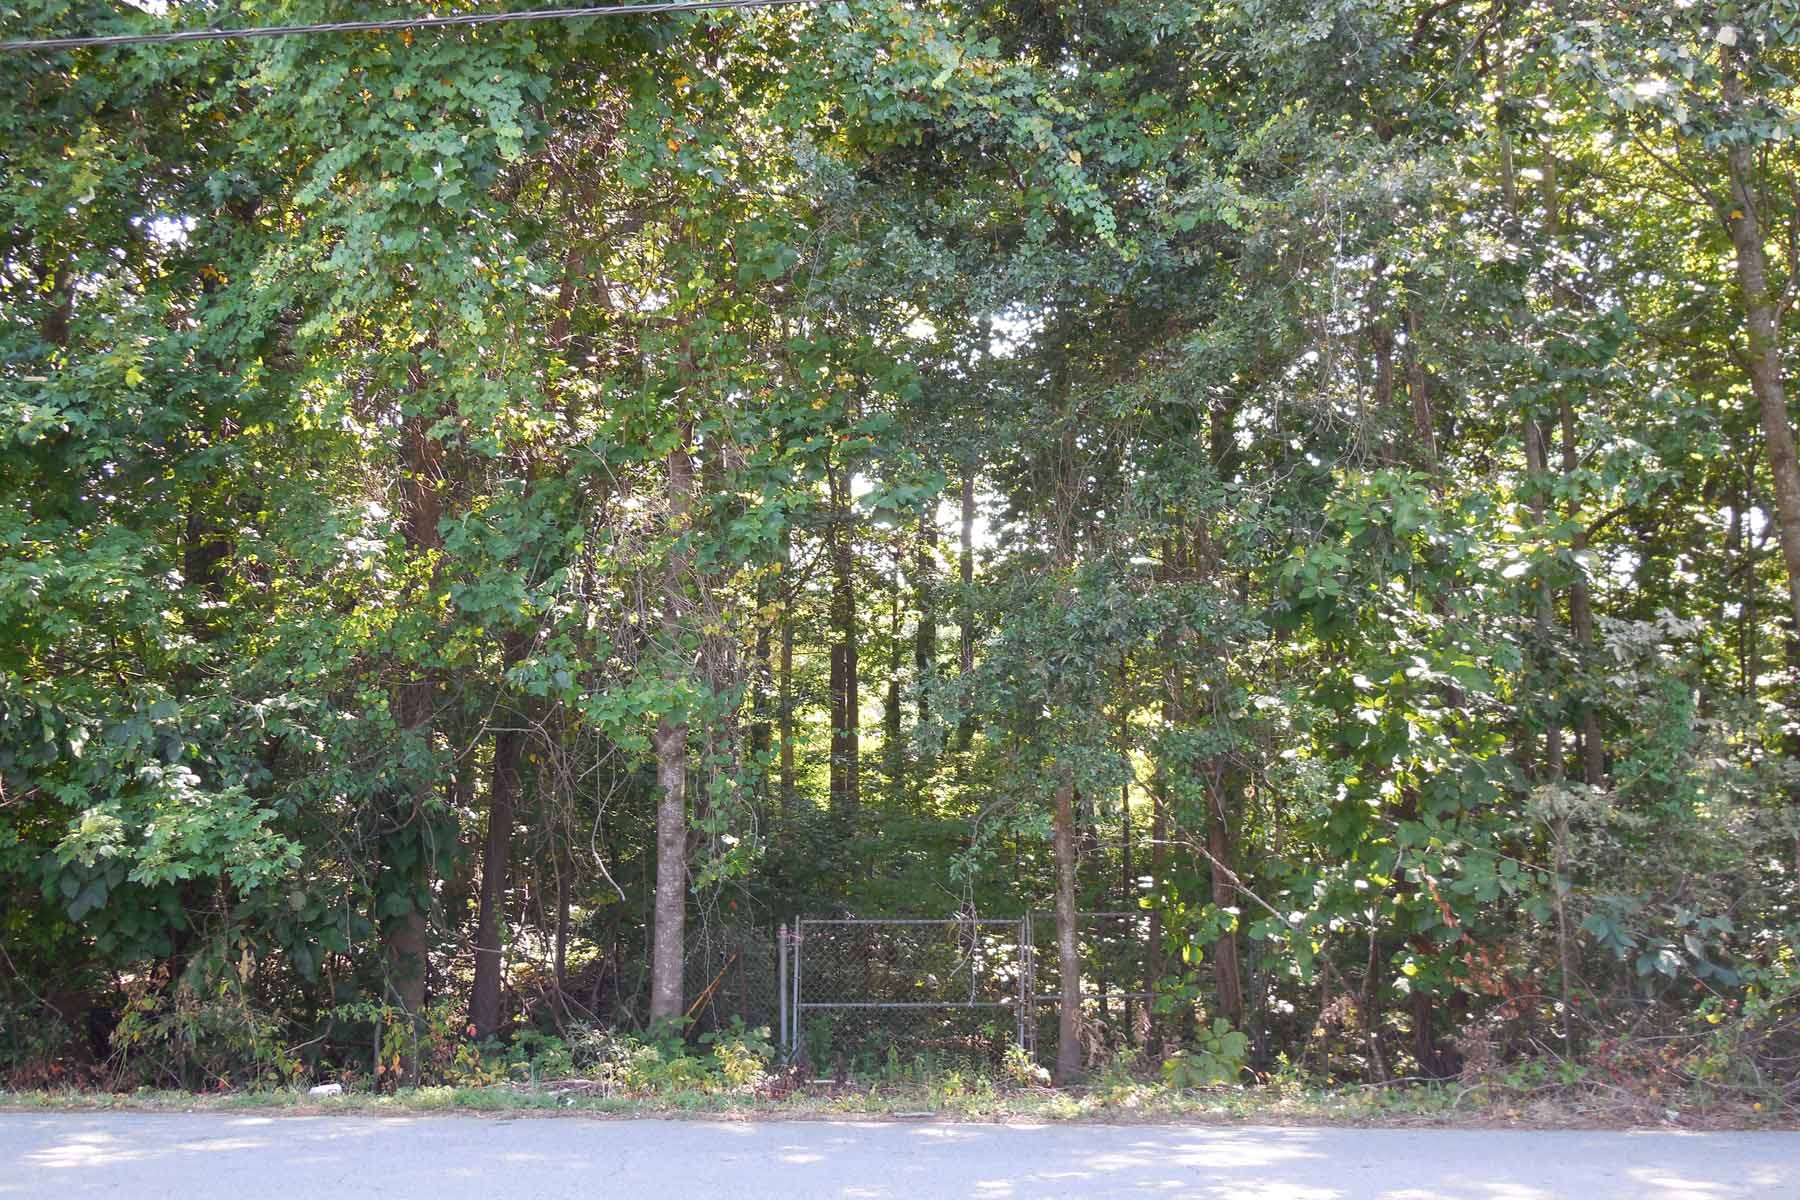 Land for Sale at Residential Level Wooded Lot 3100 Reps Miller Rd Norcross, Georgia 30071 United States